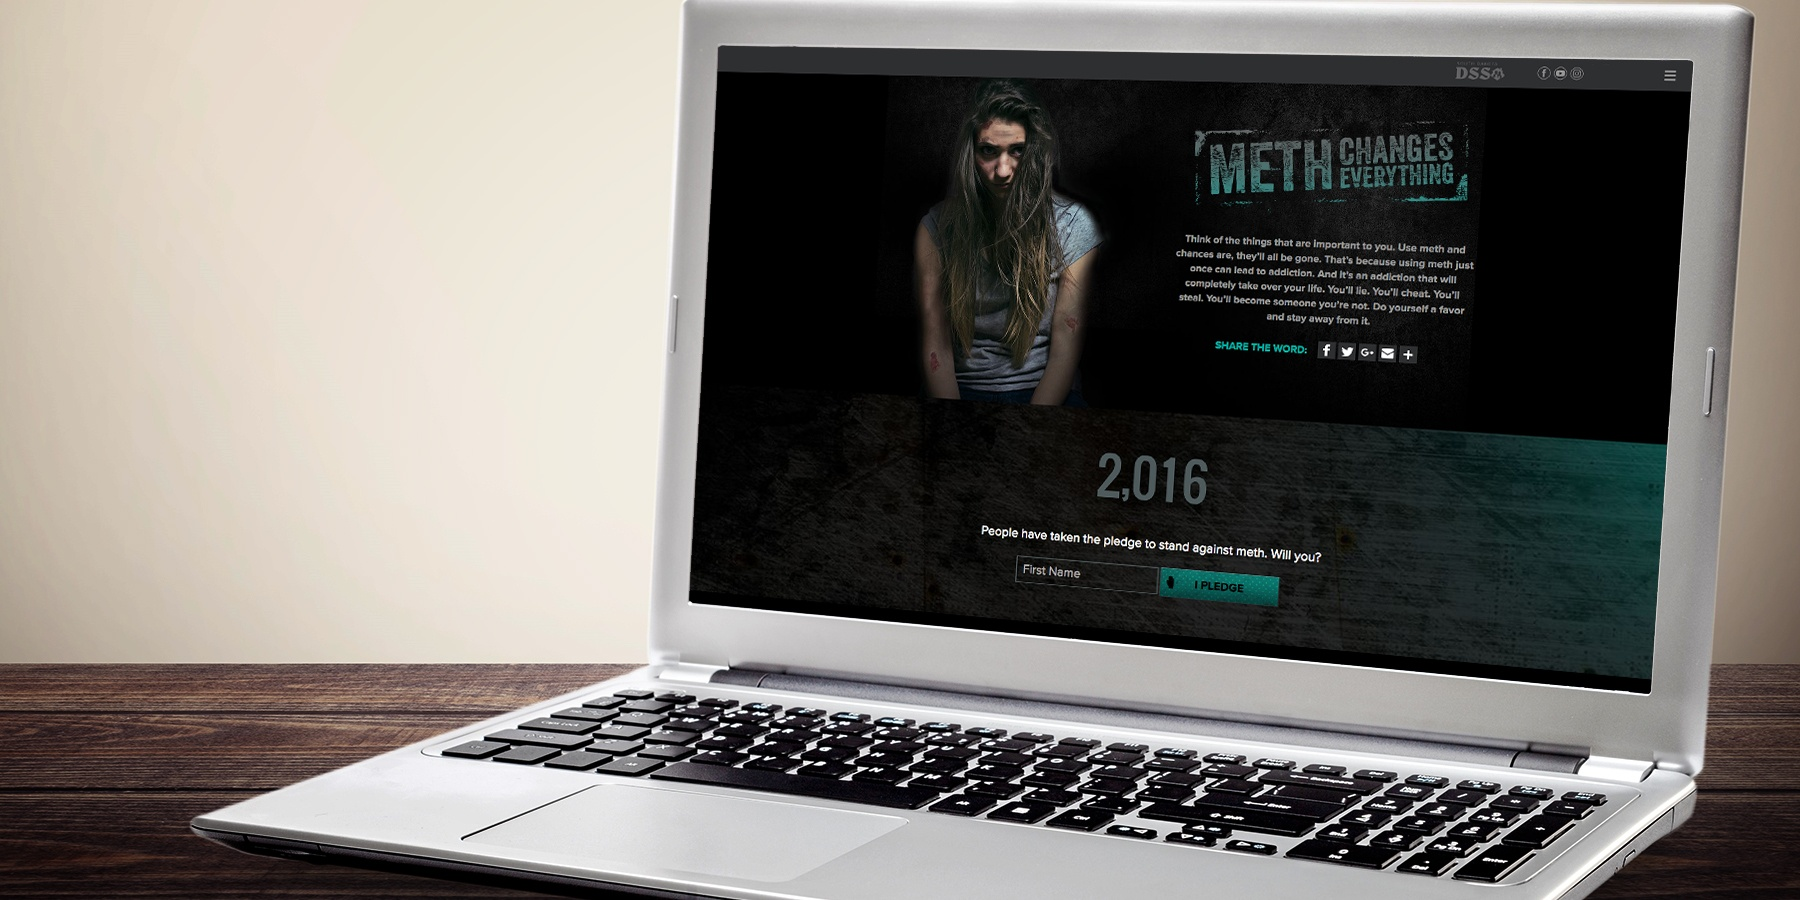 Meth_Website_Laptop_Web.jpg